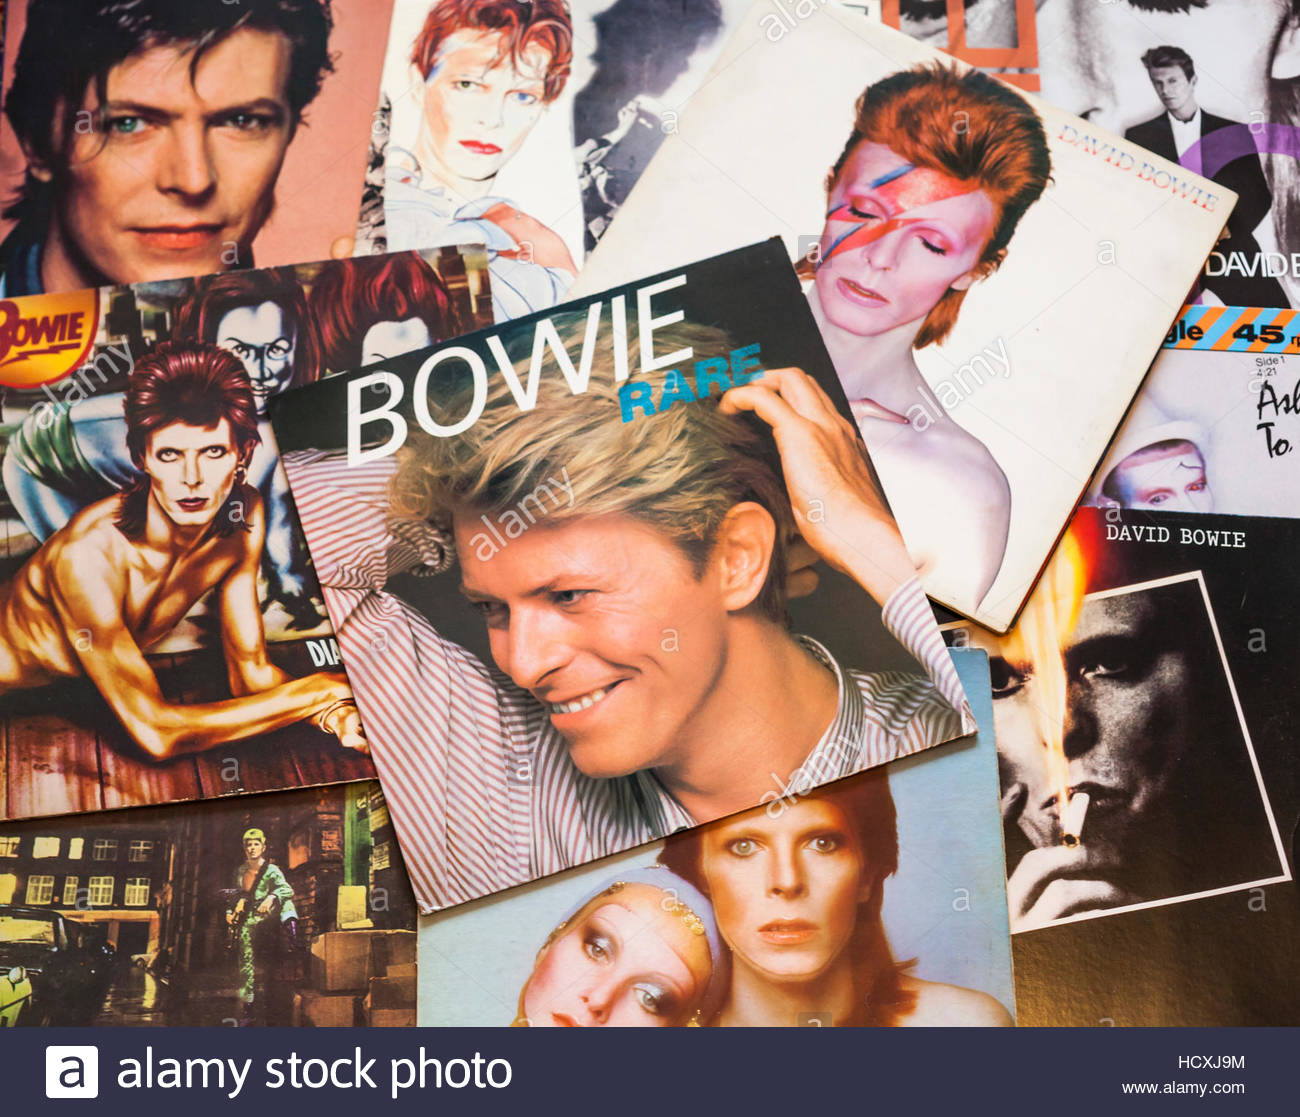 A selection of assorted David Bowie album covers, a tribute